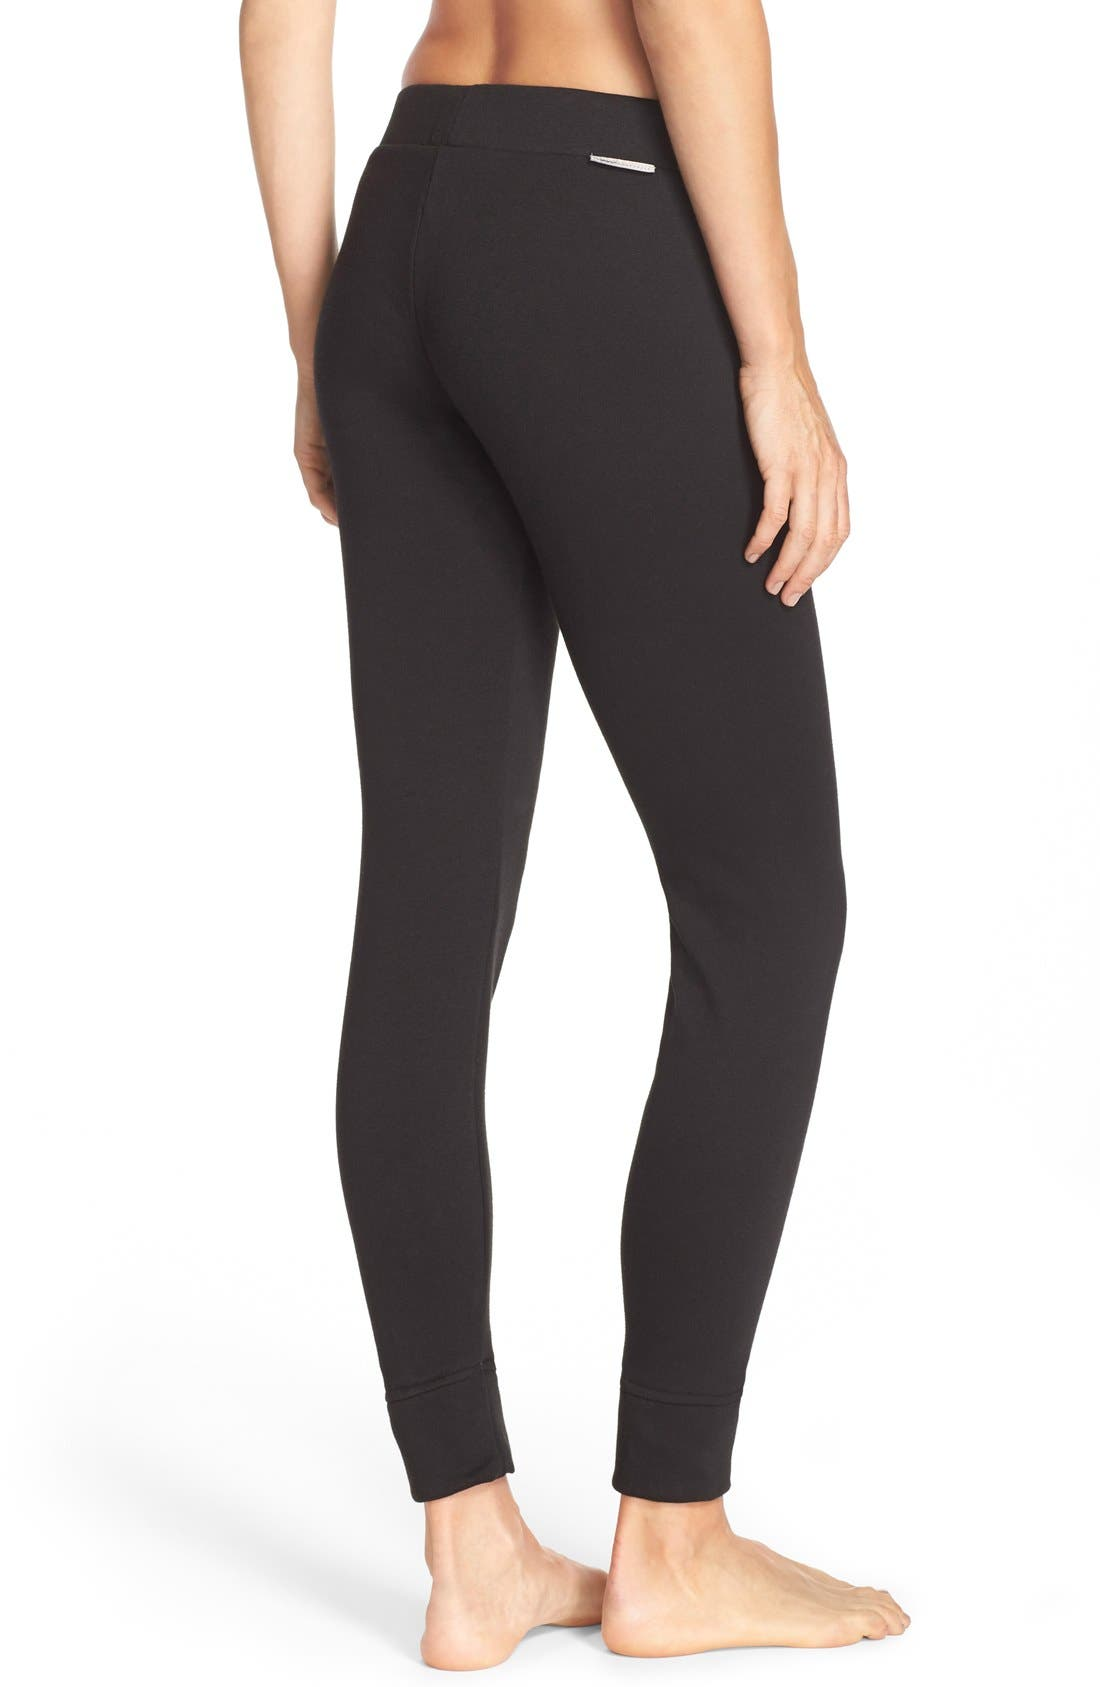 'Goldie' Leggings,                             Alternate thumbnail 2, color,                             001